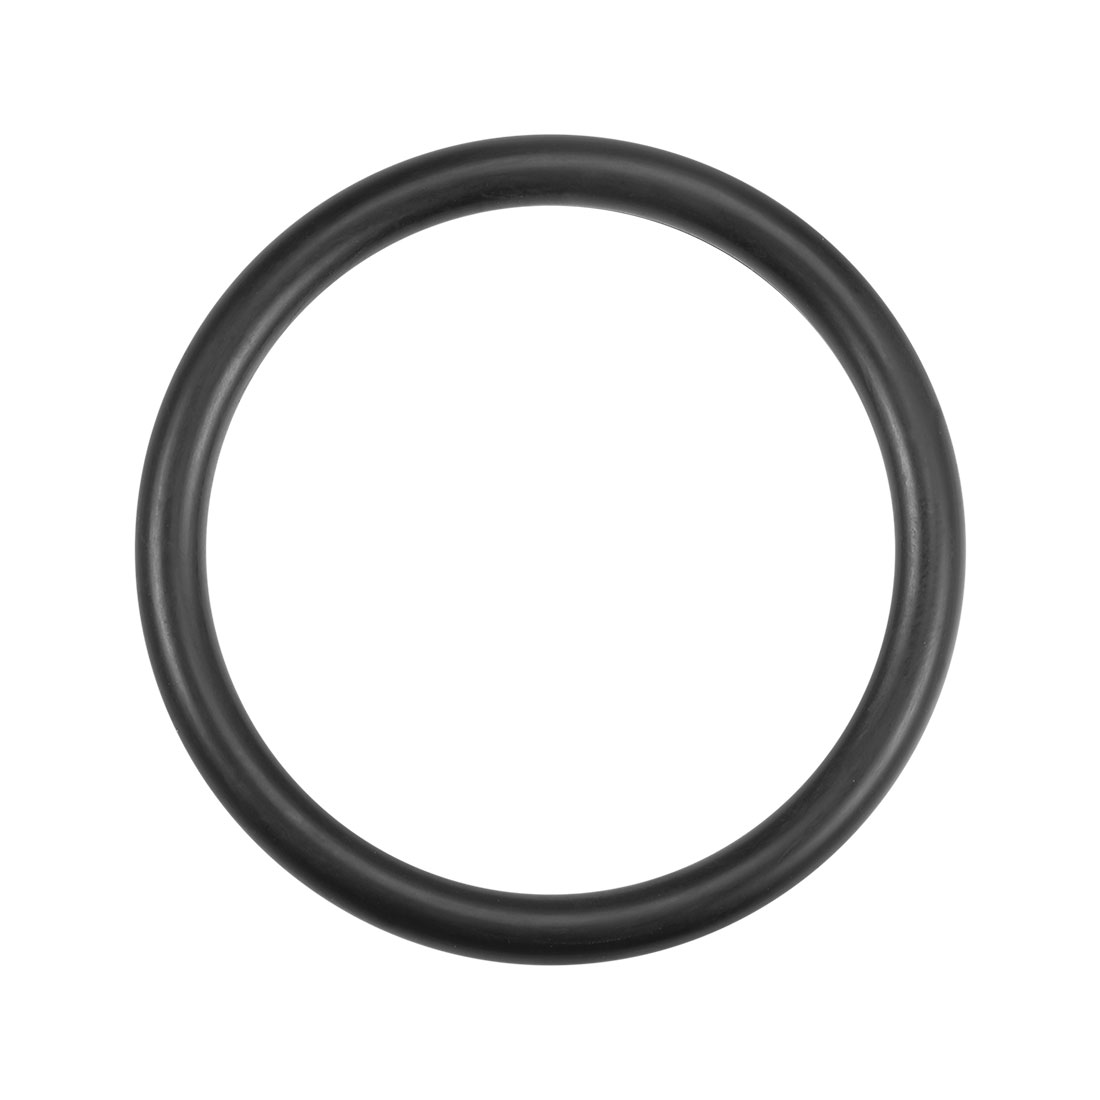 O-Rings Nitrile Rubber 39mm x 47mm x 4mm Round Seal Gasket